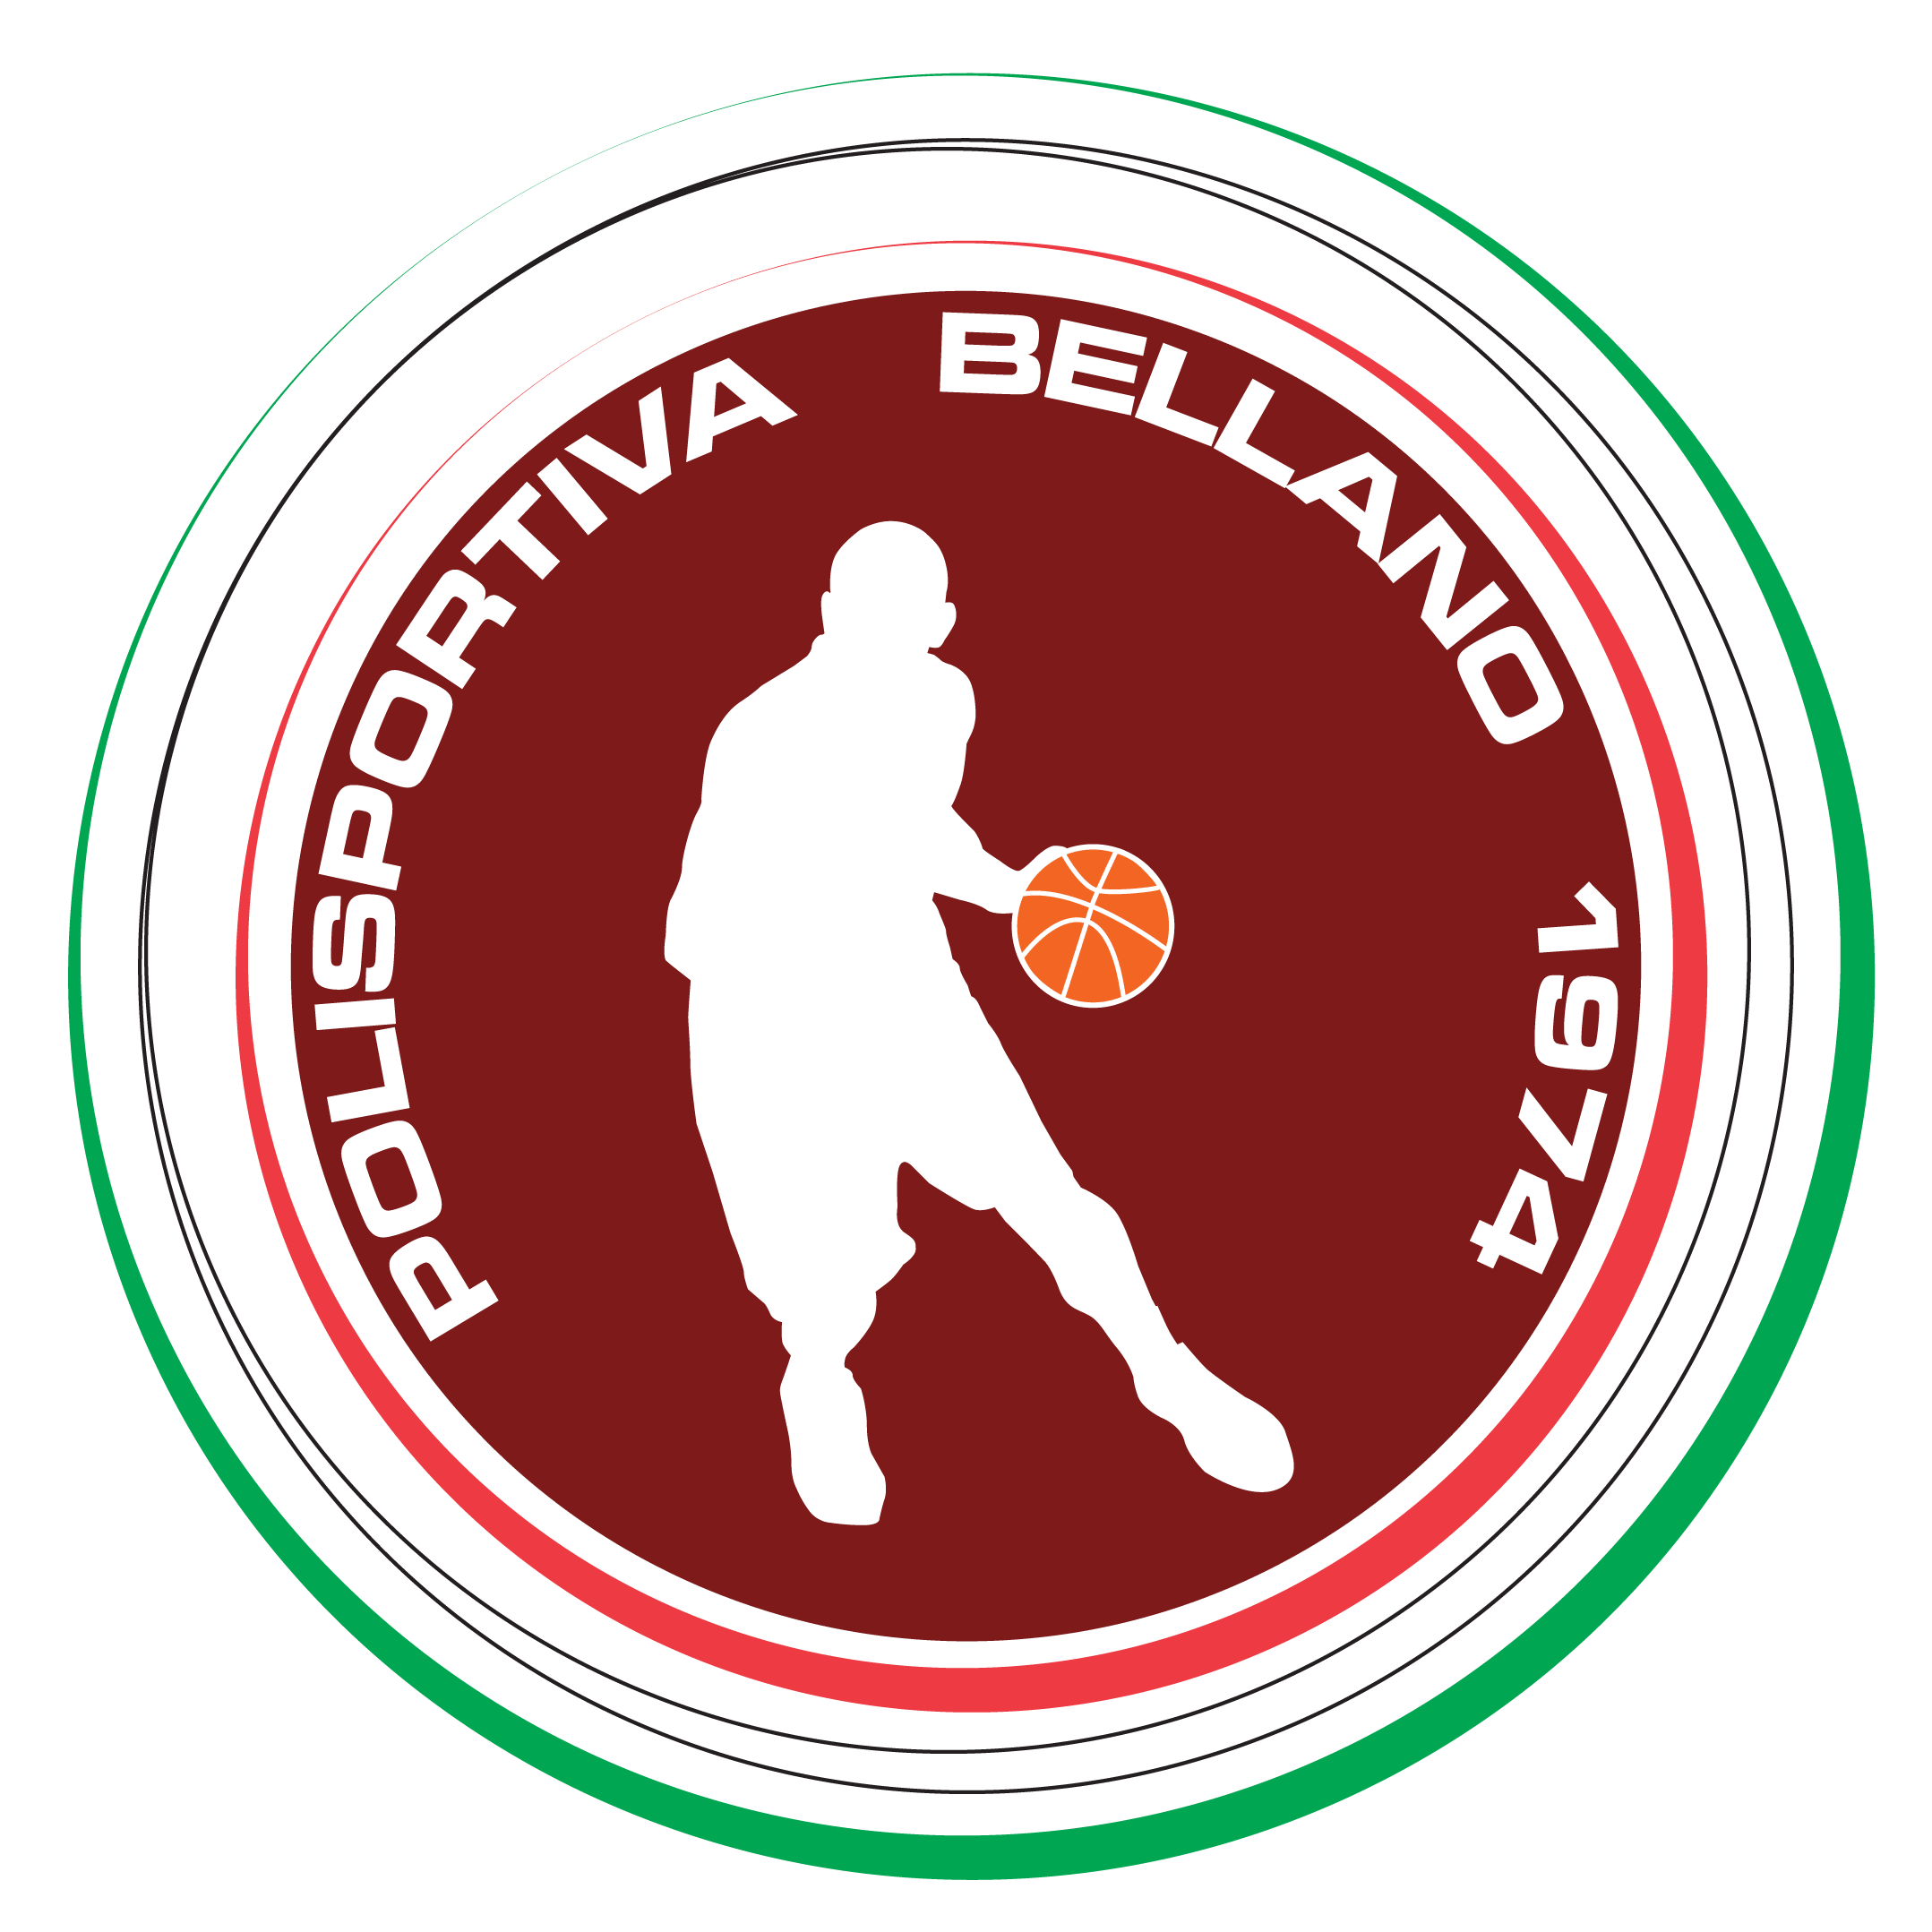 Polisportiva Bellano - Basket